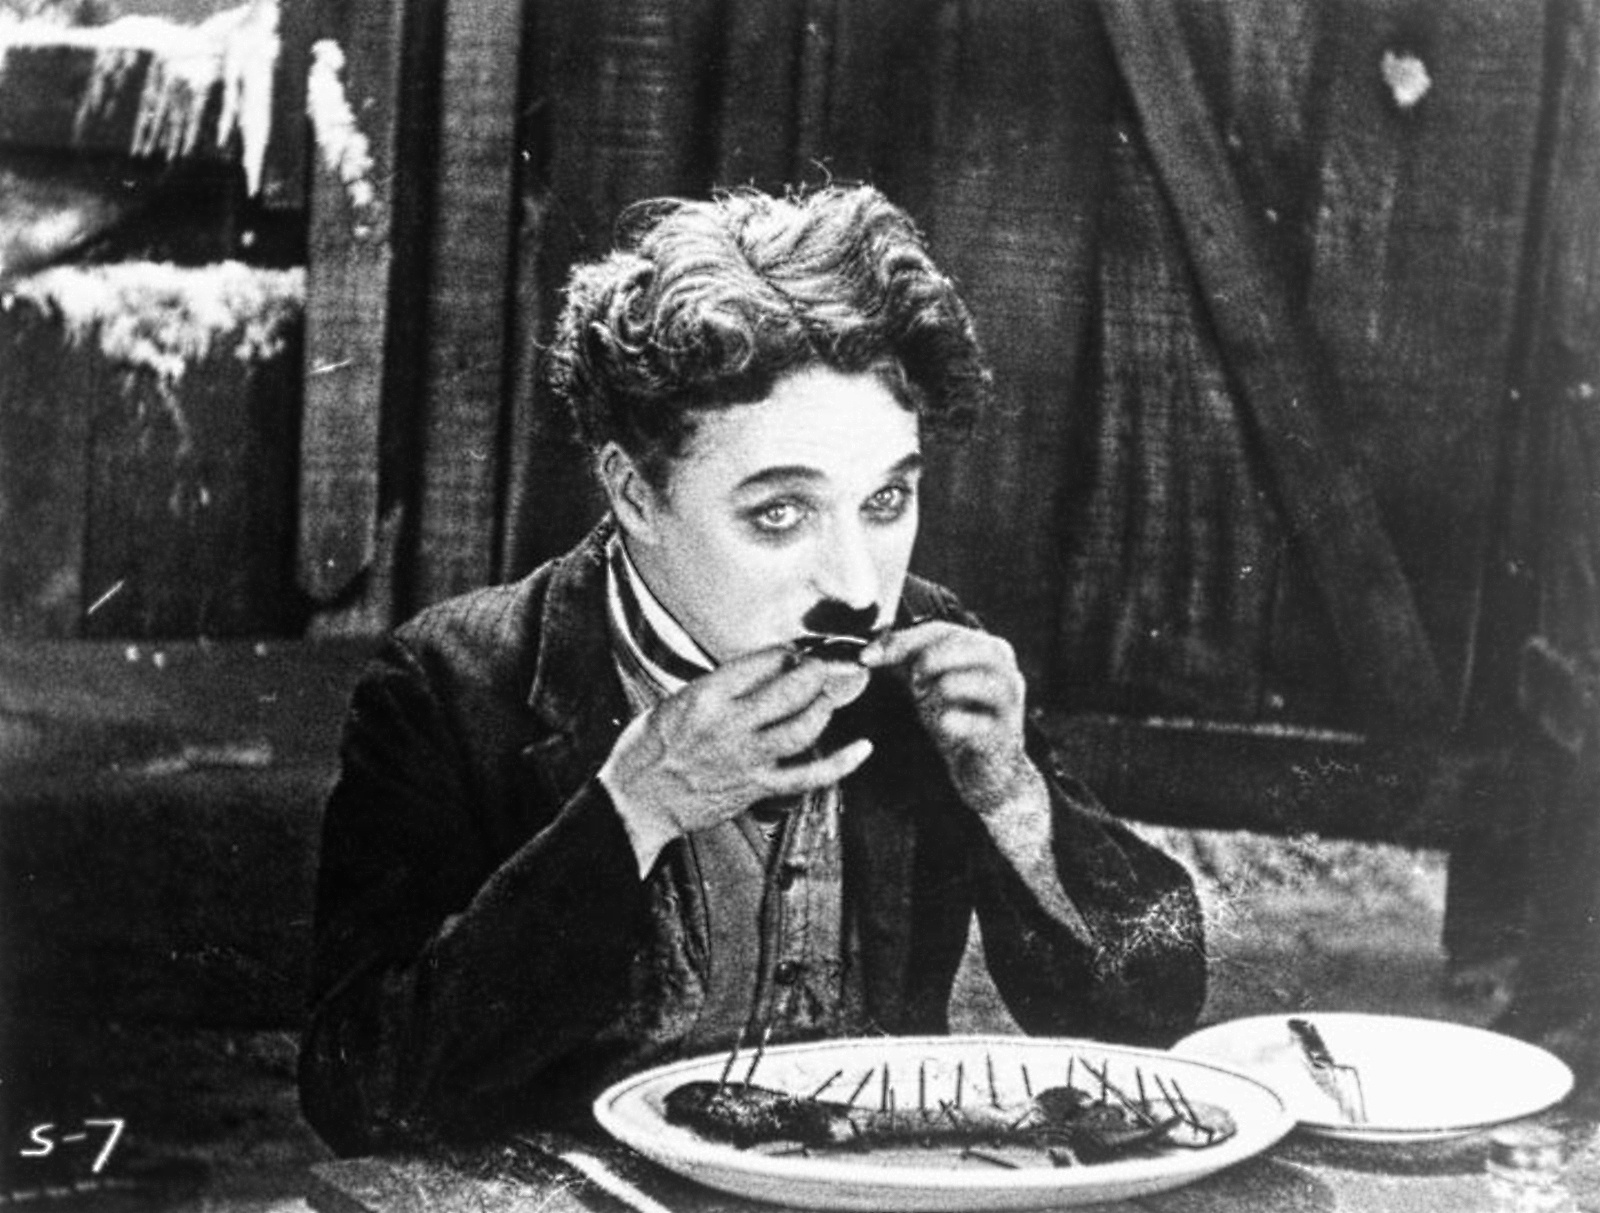 sample essay about charlie chaplin essay in his first speaking role charlie chaplin makes one of the most moving and thought provoking speeches in history